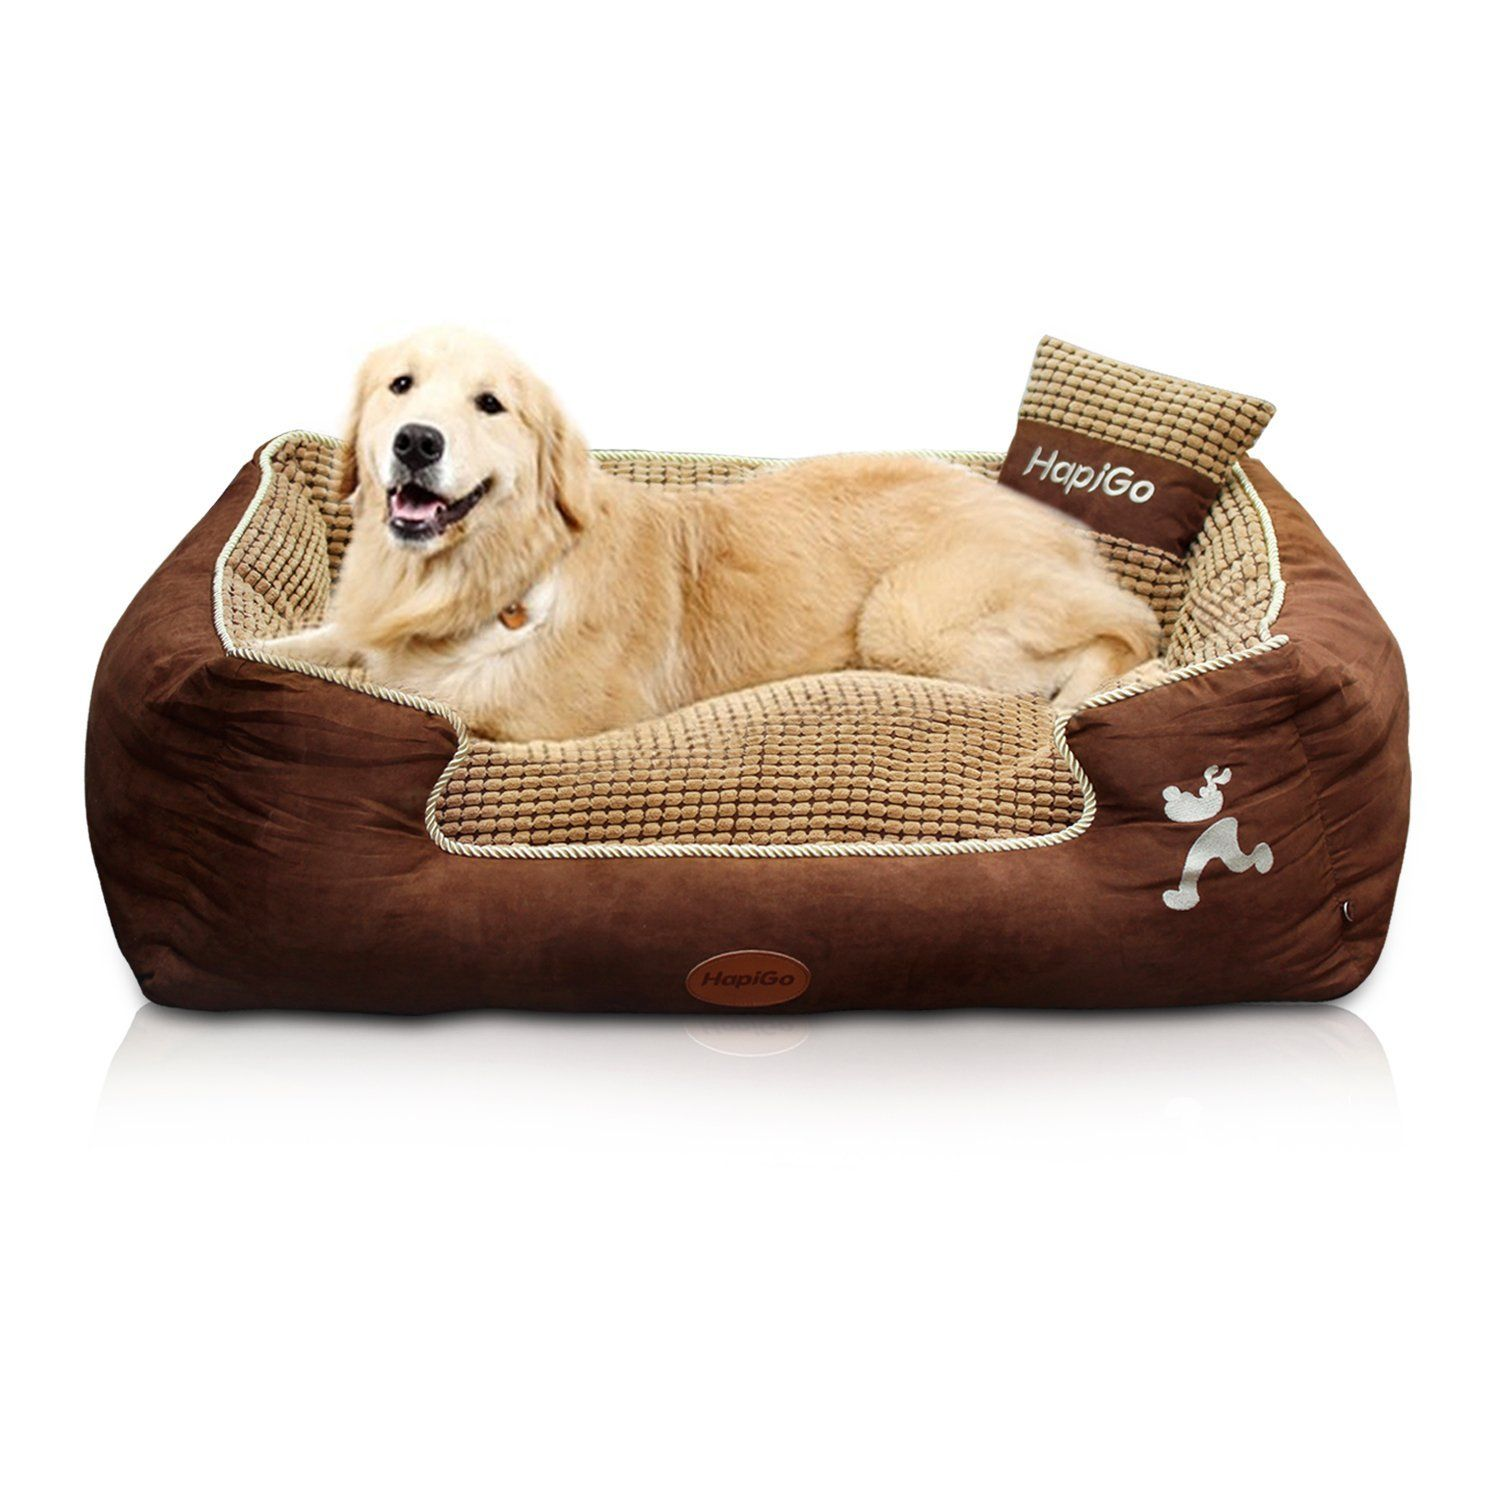 petco best on sale bed lavishly big large beds small xplrvr bedding cheap dog